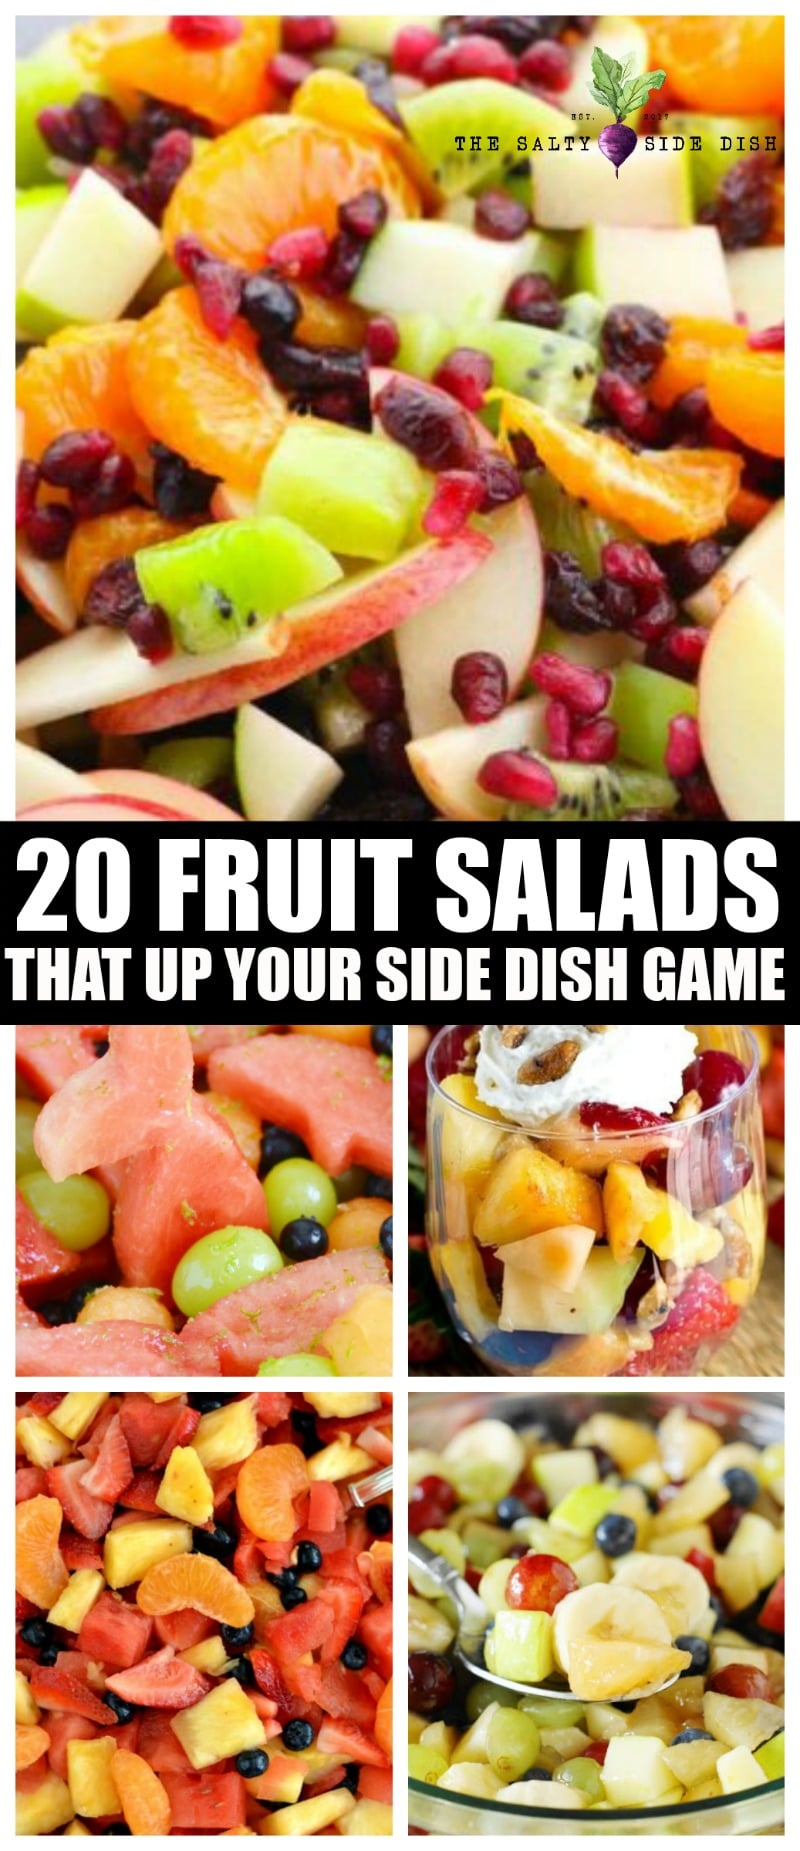 20 Fruit Salad Recipes To Up Your Side Dish Game this season! From fresh fruit salads to creamy side dish desserts, here are 20 of the top fruit salad recipe ideas by the very best food bloggers.